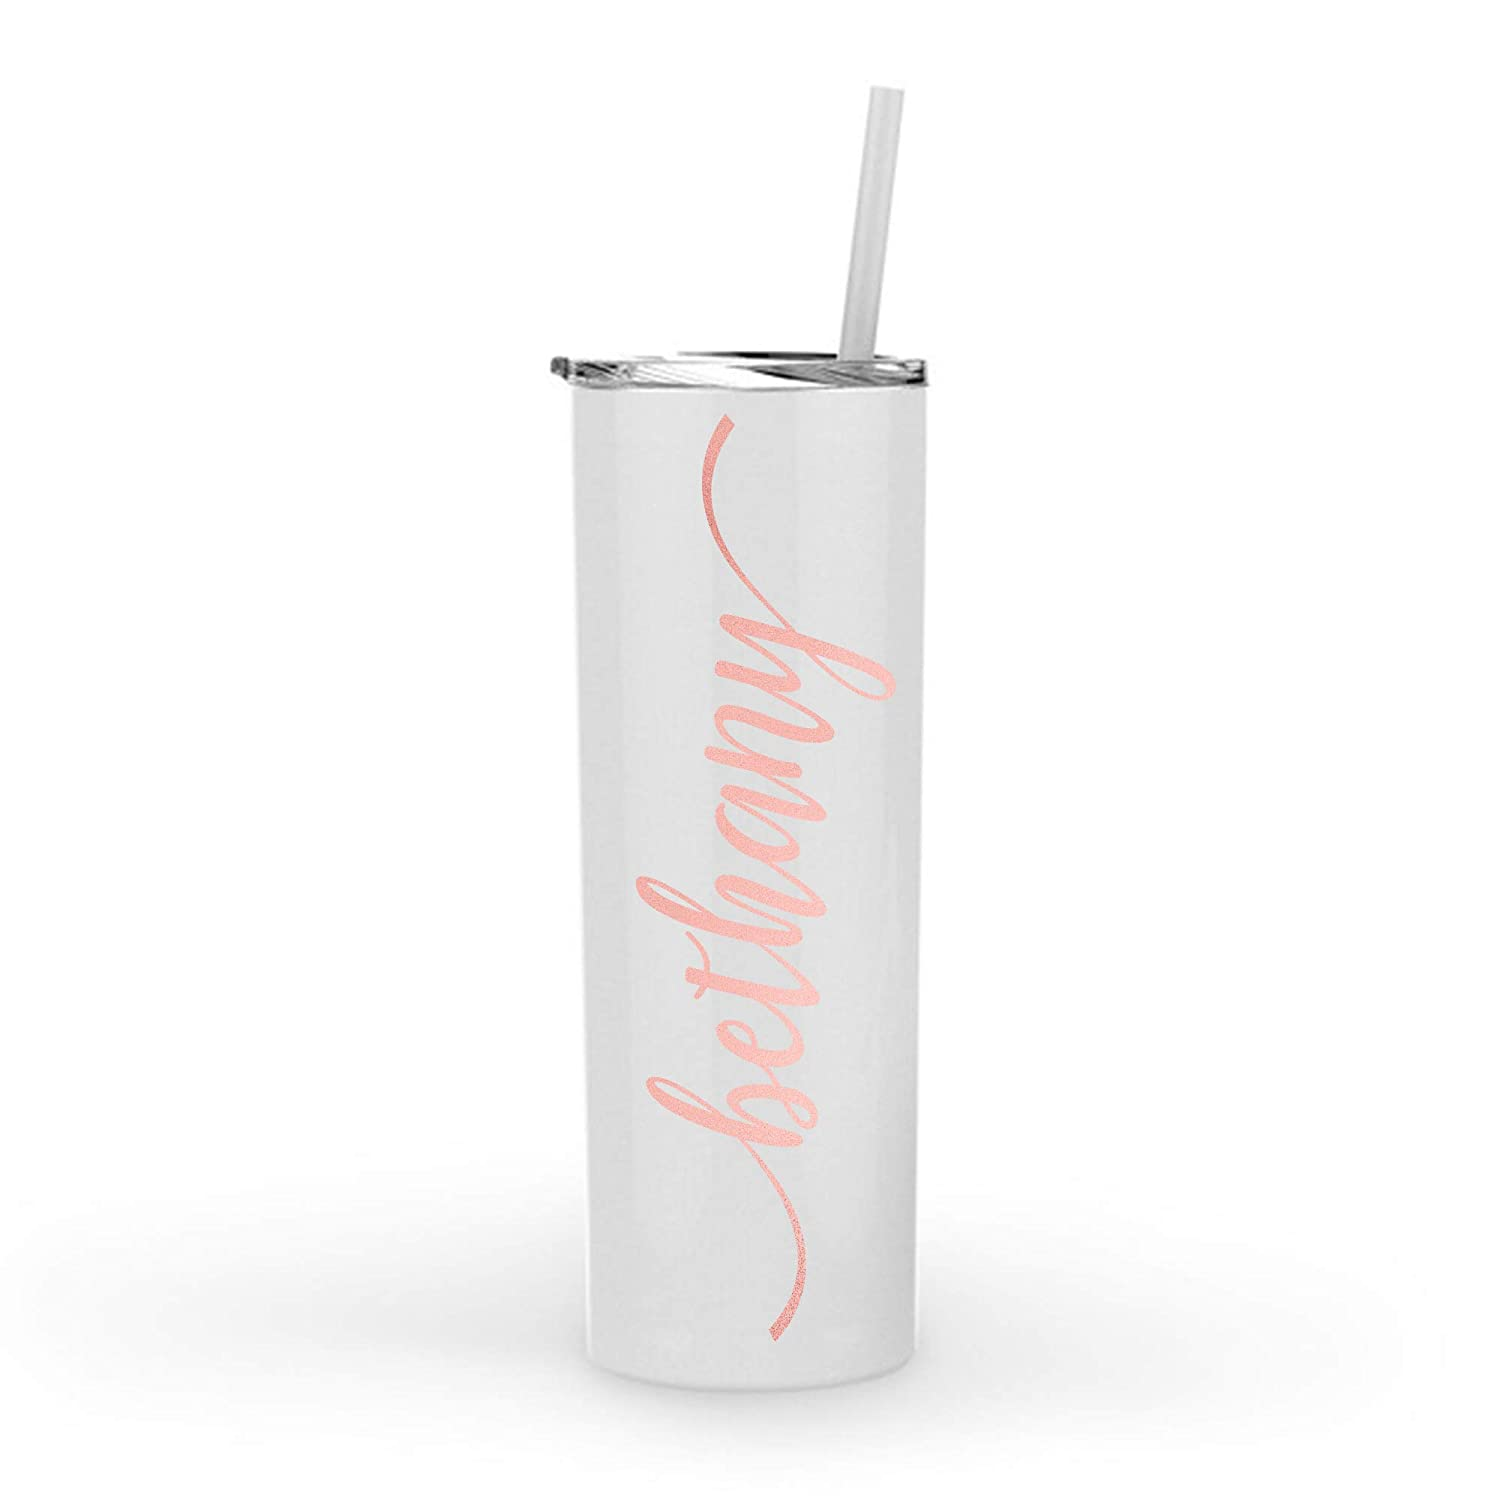 Monogrammed Stainless Steel Skinny Tumbler with Rose Gold Metallic or Glitter Vinyl Decal | 20oz White Powder Coated Double Wall Vacuum Insulated Tumbler | Personalized with Name, Word or Monogram